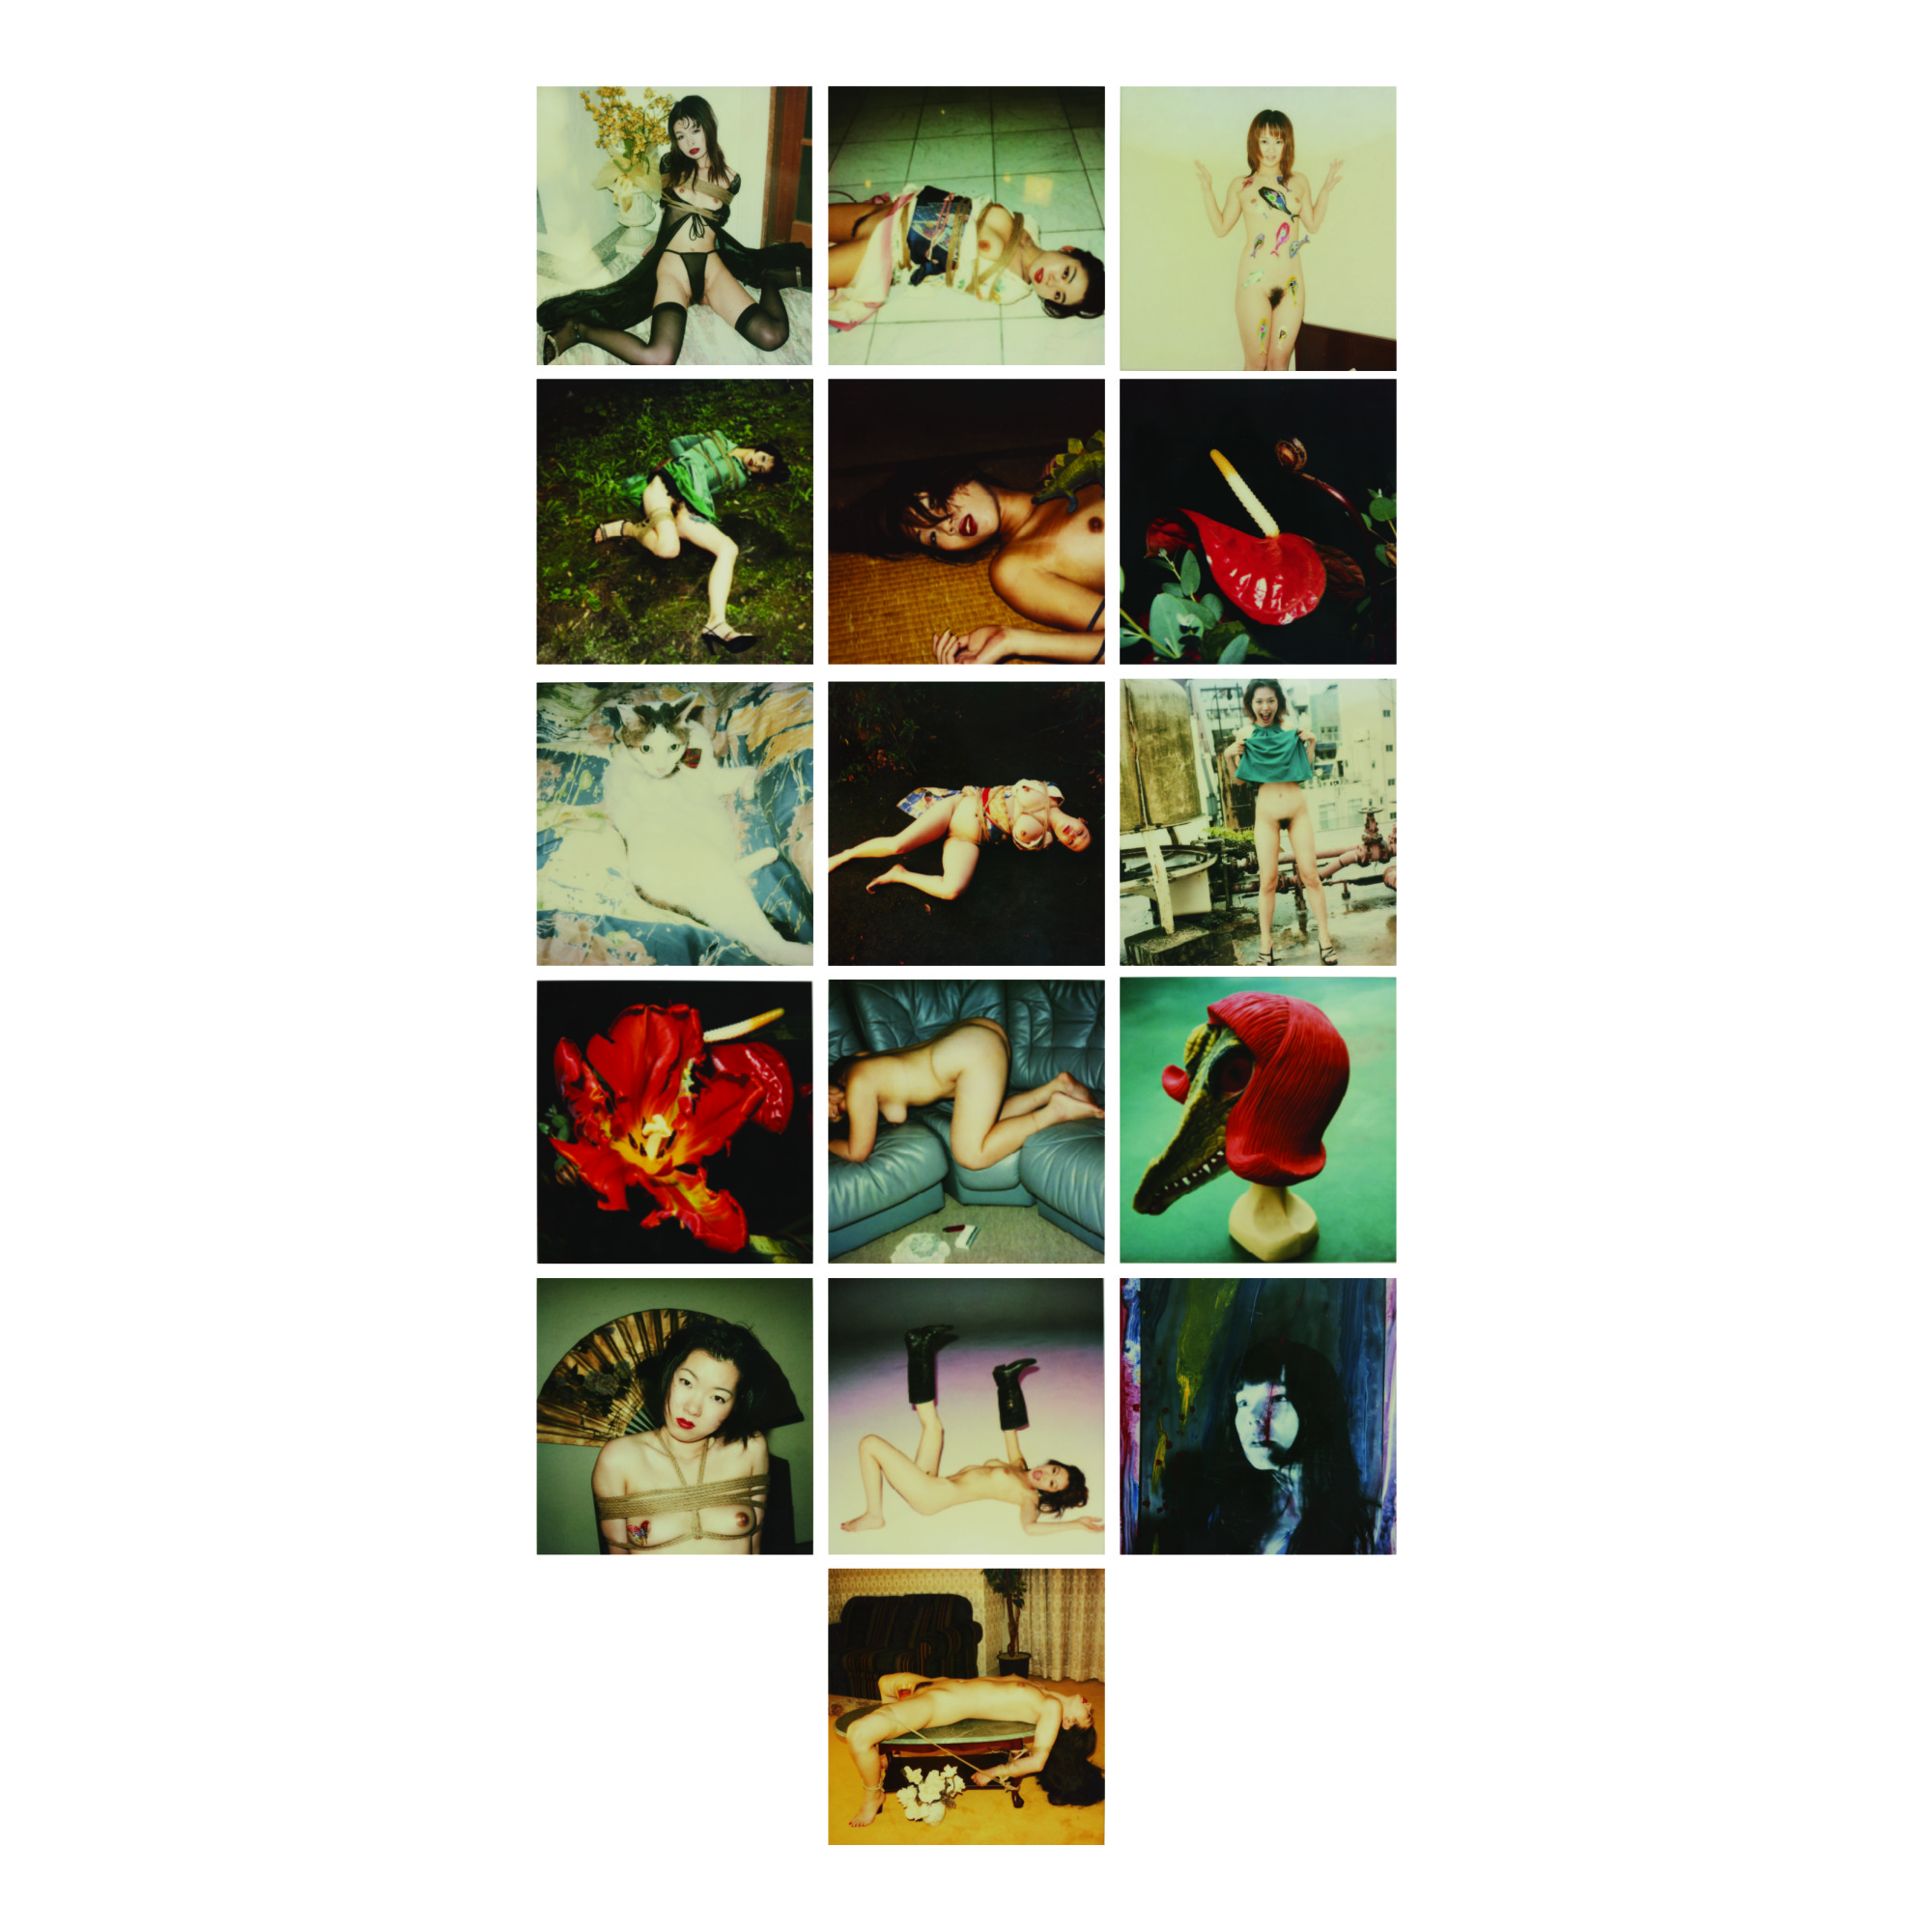 NOBUYOSHI ARAKI | SELECTED IMAGES FROM POLA EROS